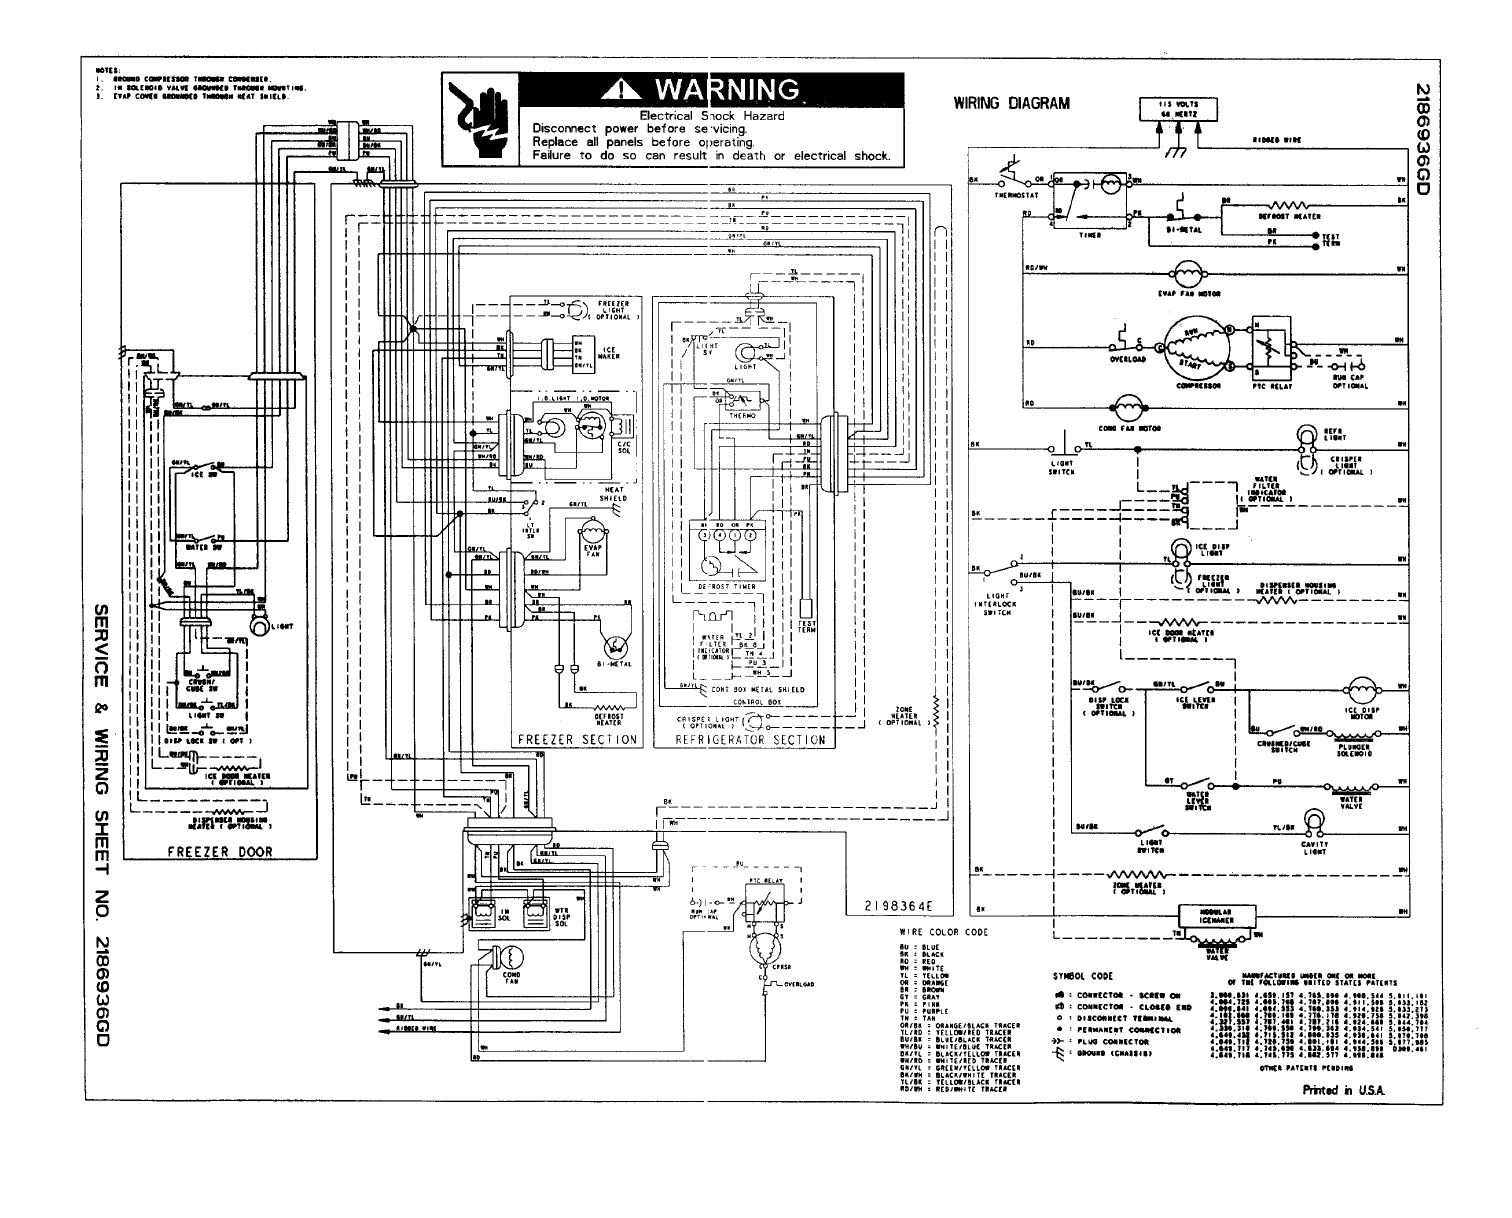 hitch 7 pin wiring diagram